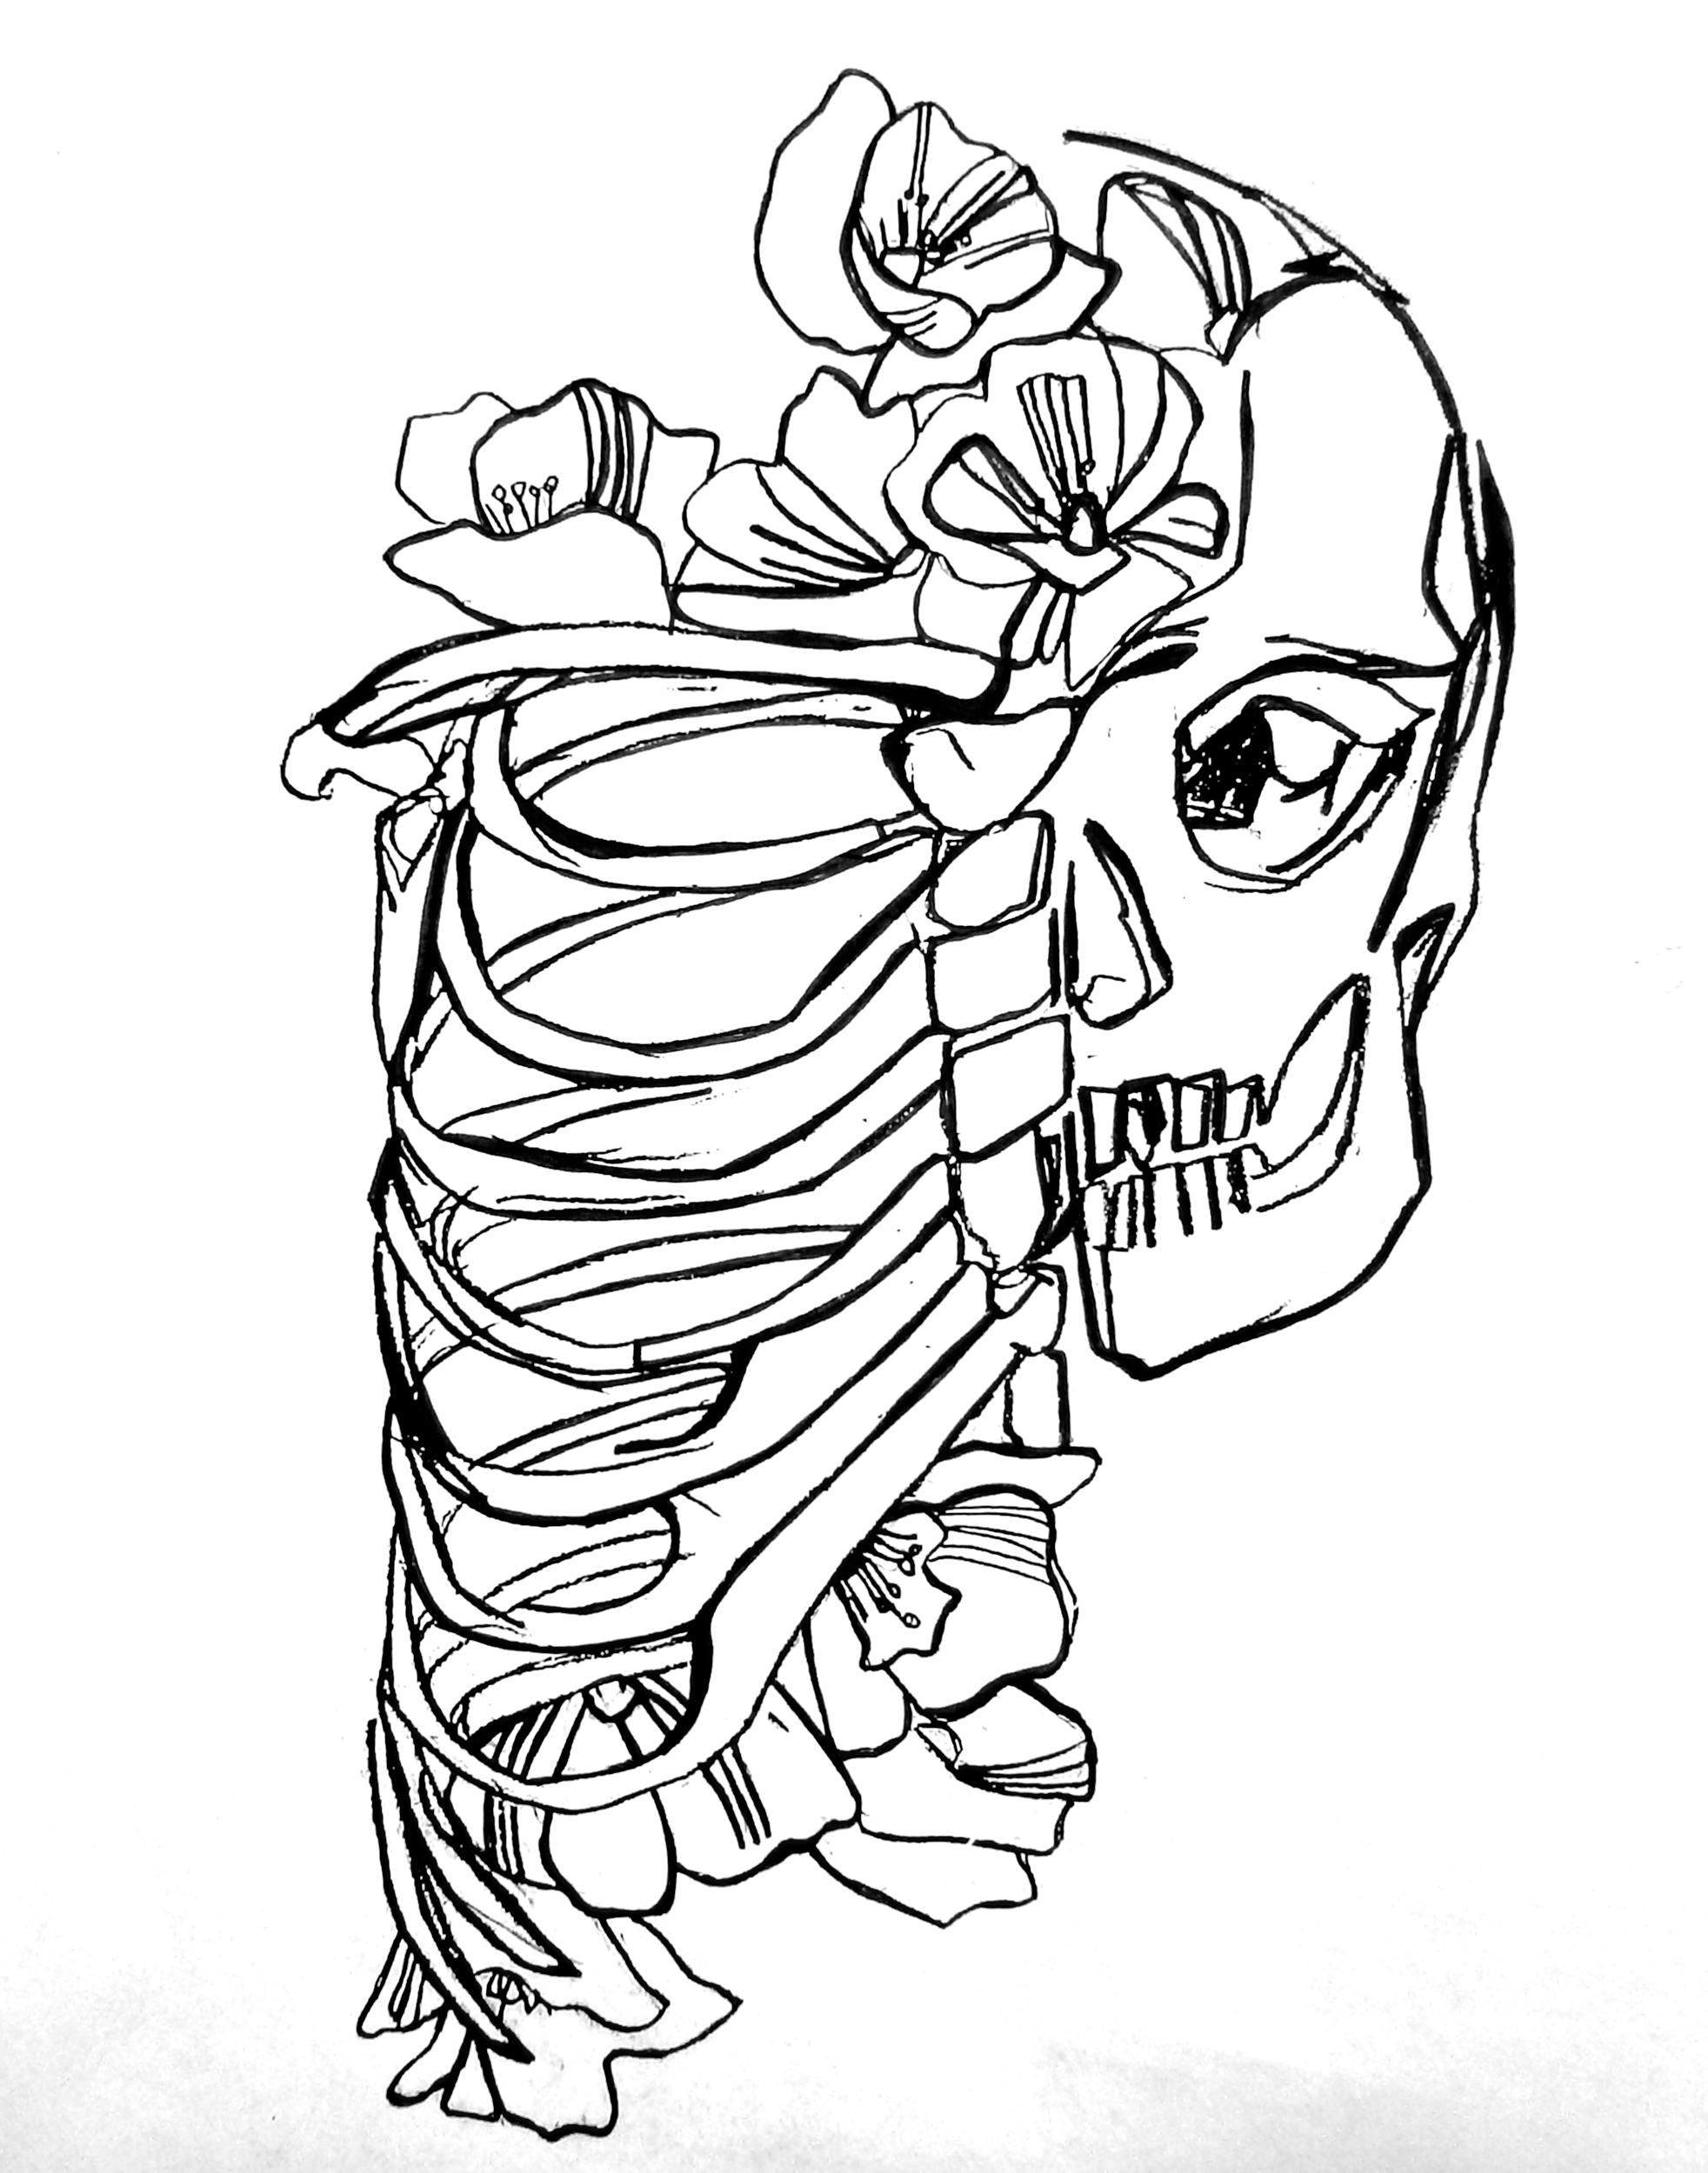 Rib Cage Line Drawing Mixing Themes | Artjaden